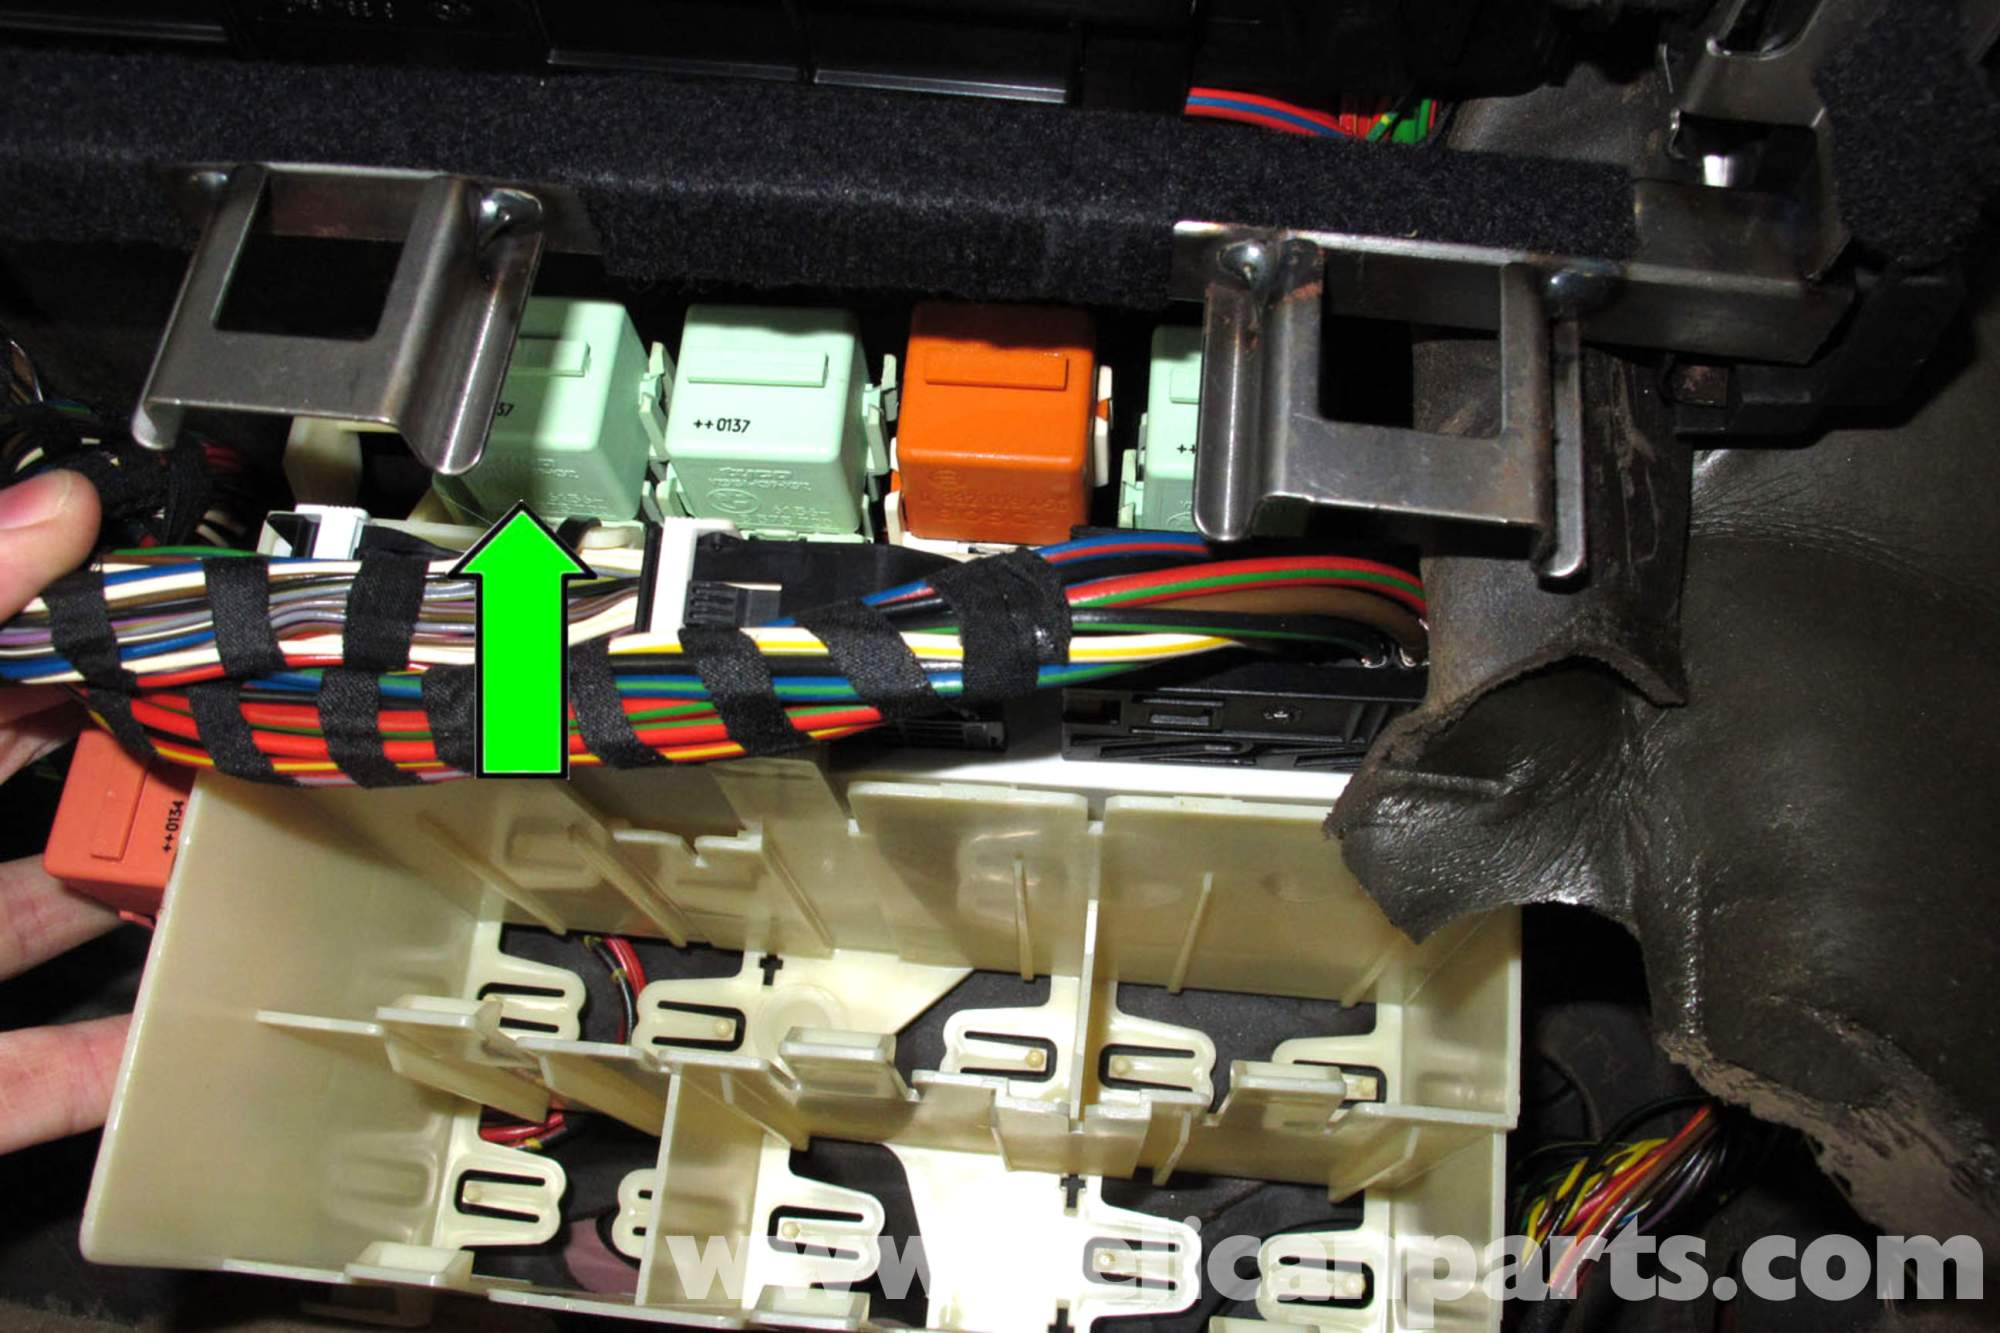 hight resolution of 1990 bmw 535i relay diagram likewise bmw fuel pump relay location 1990 bmw 535i relay diagram likewise bmw fuel pump relay location also